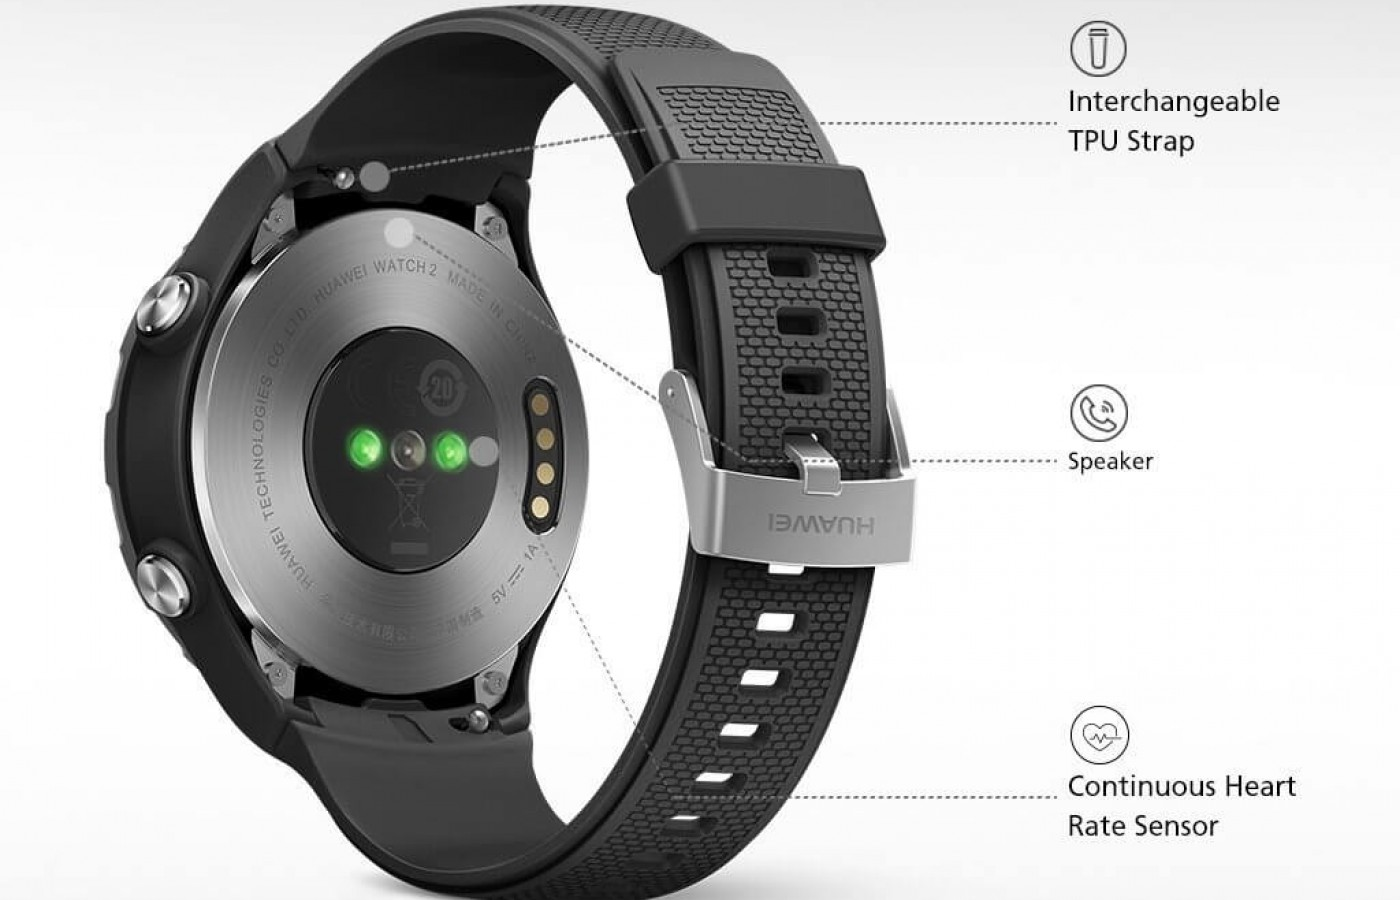 The watch is designed to be compatible with any Android of iOS device.